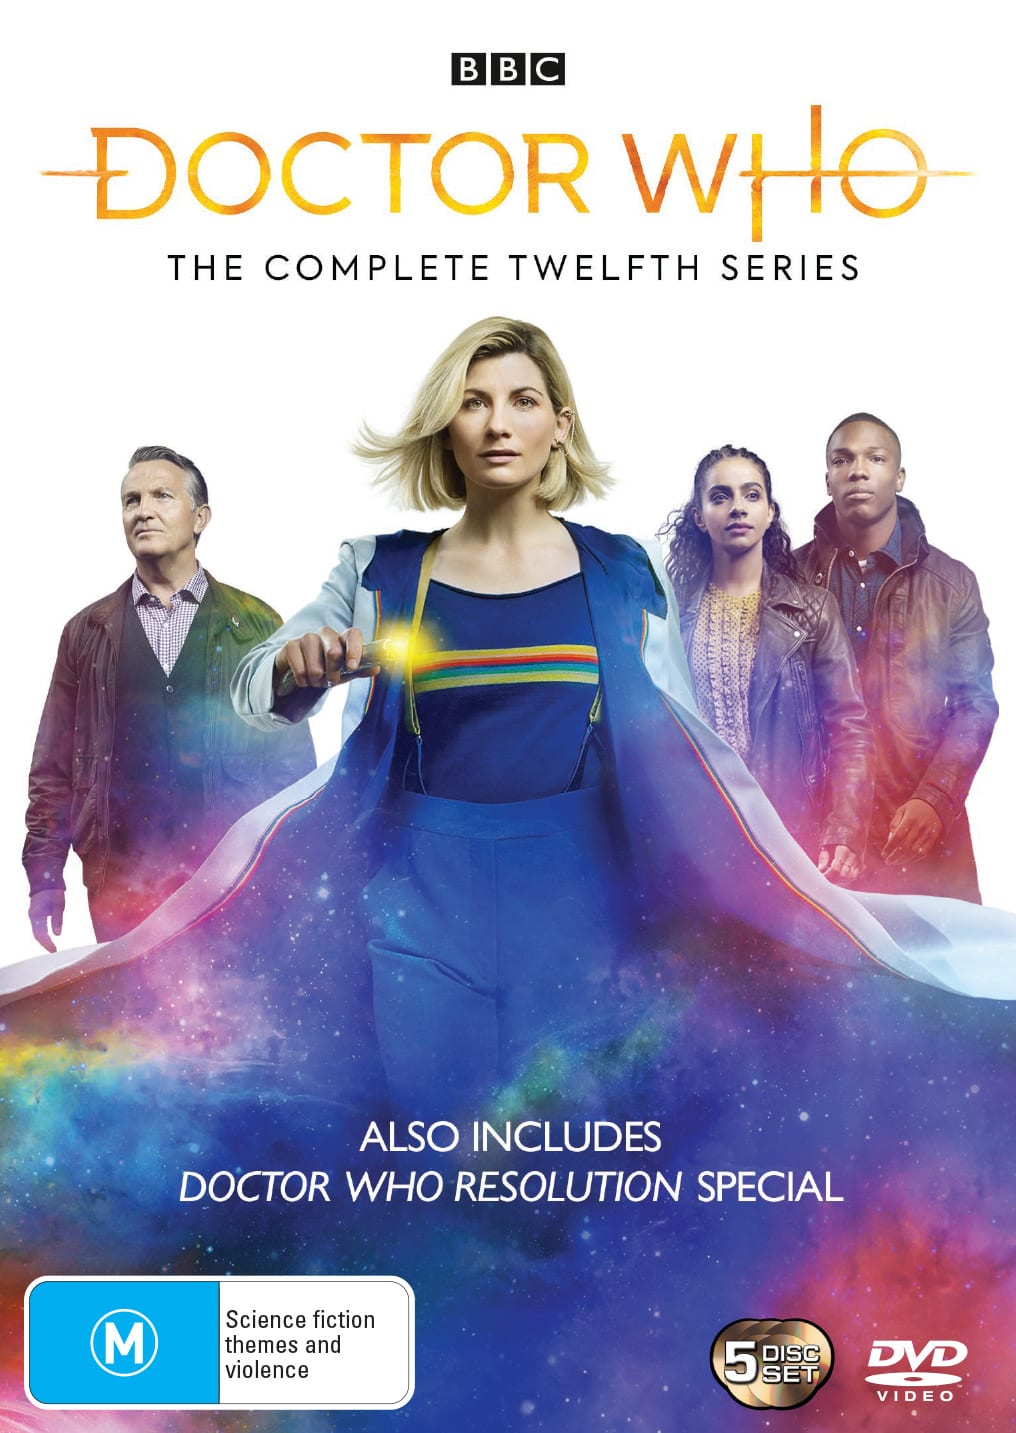 Doctor Who: The Complete Twelfth Series (Box Set) [DVD]